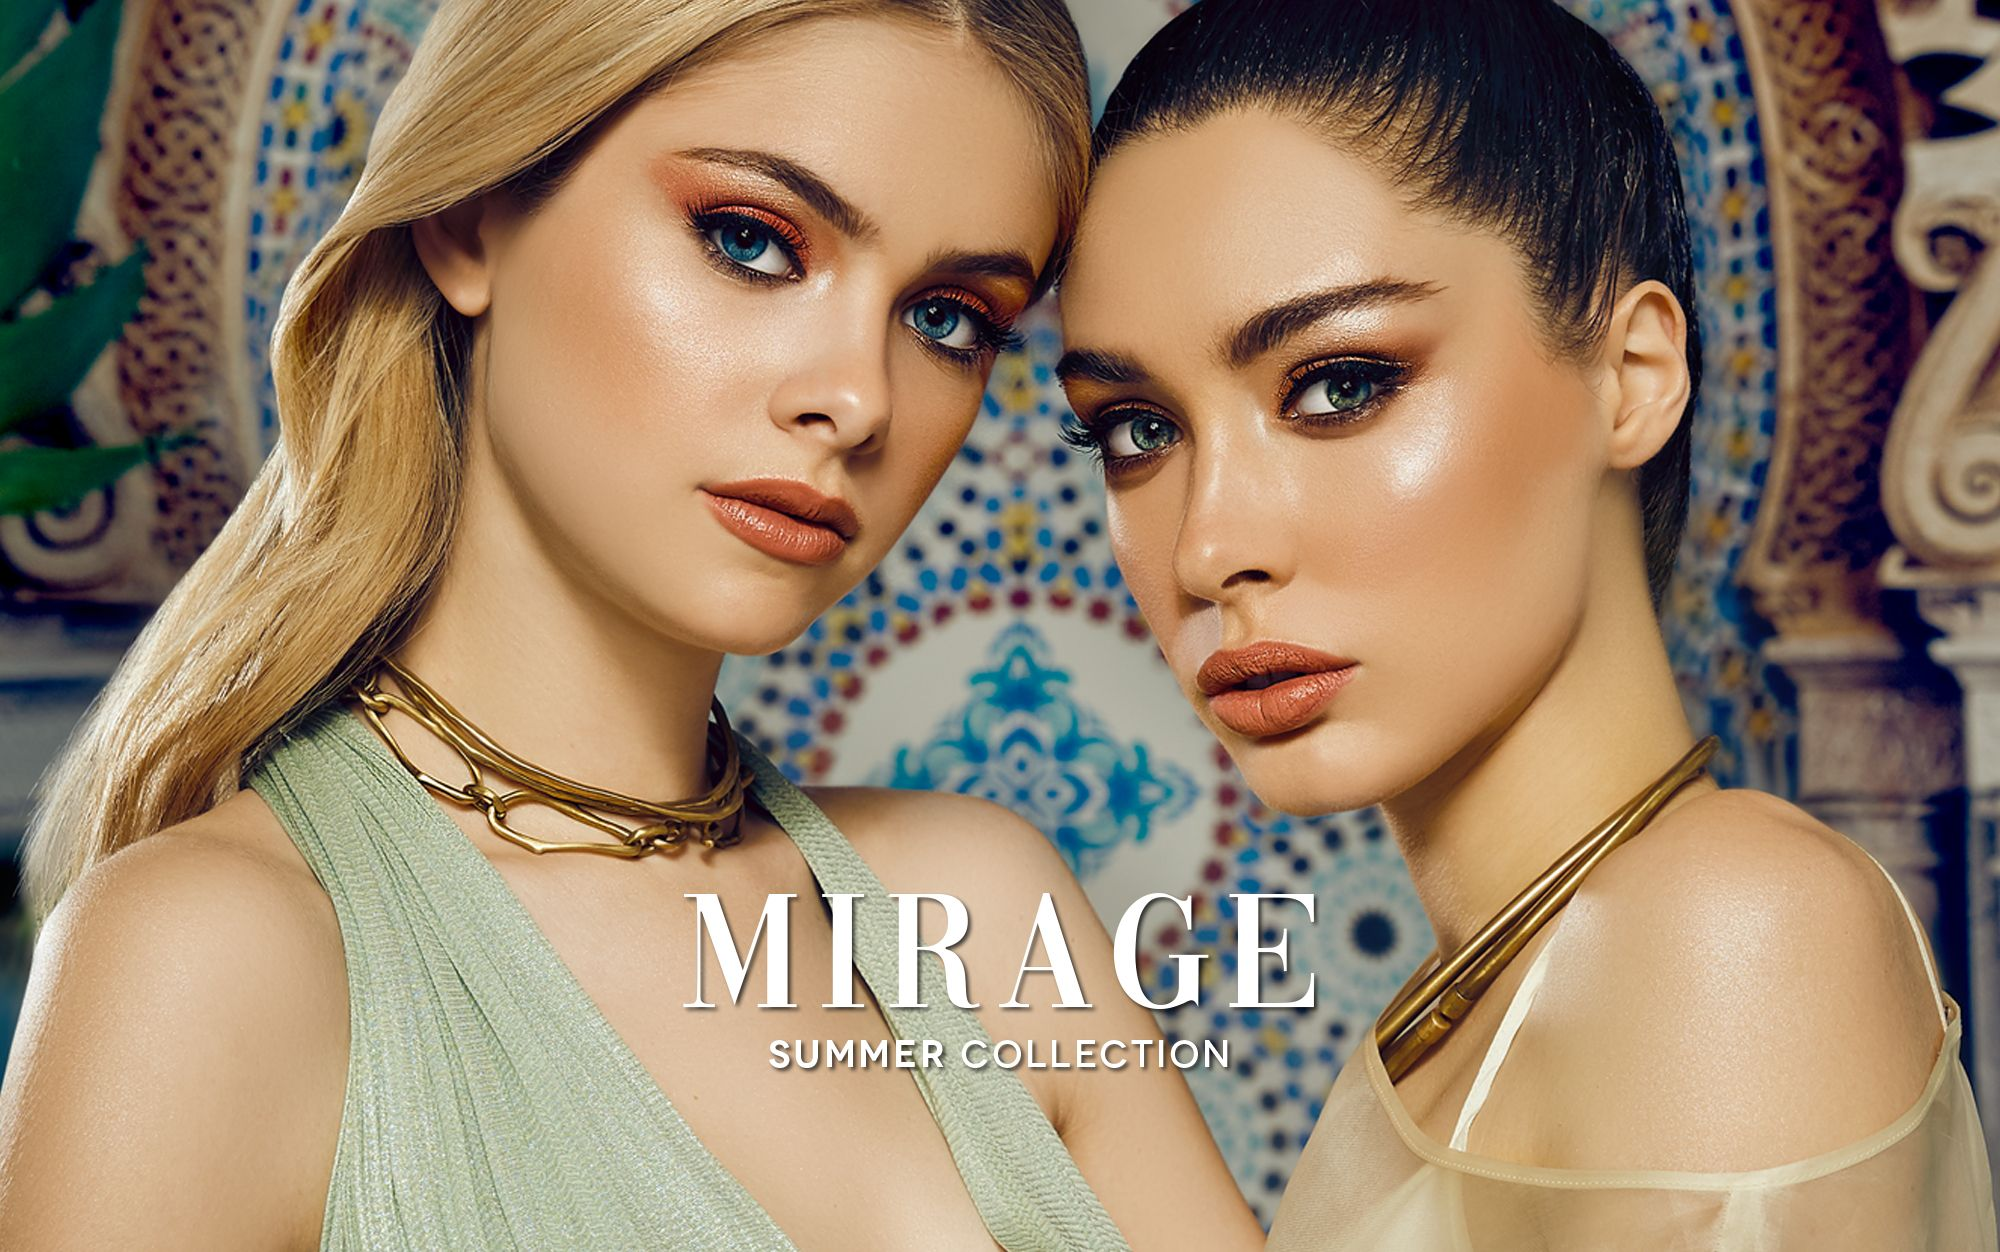 MIRAGE  summer collection